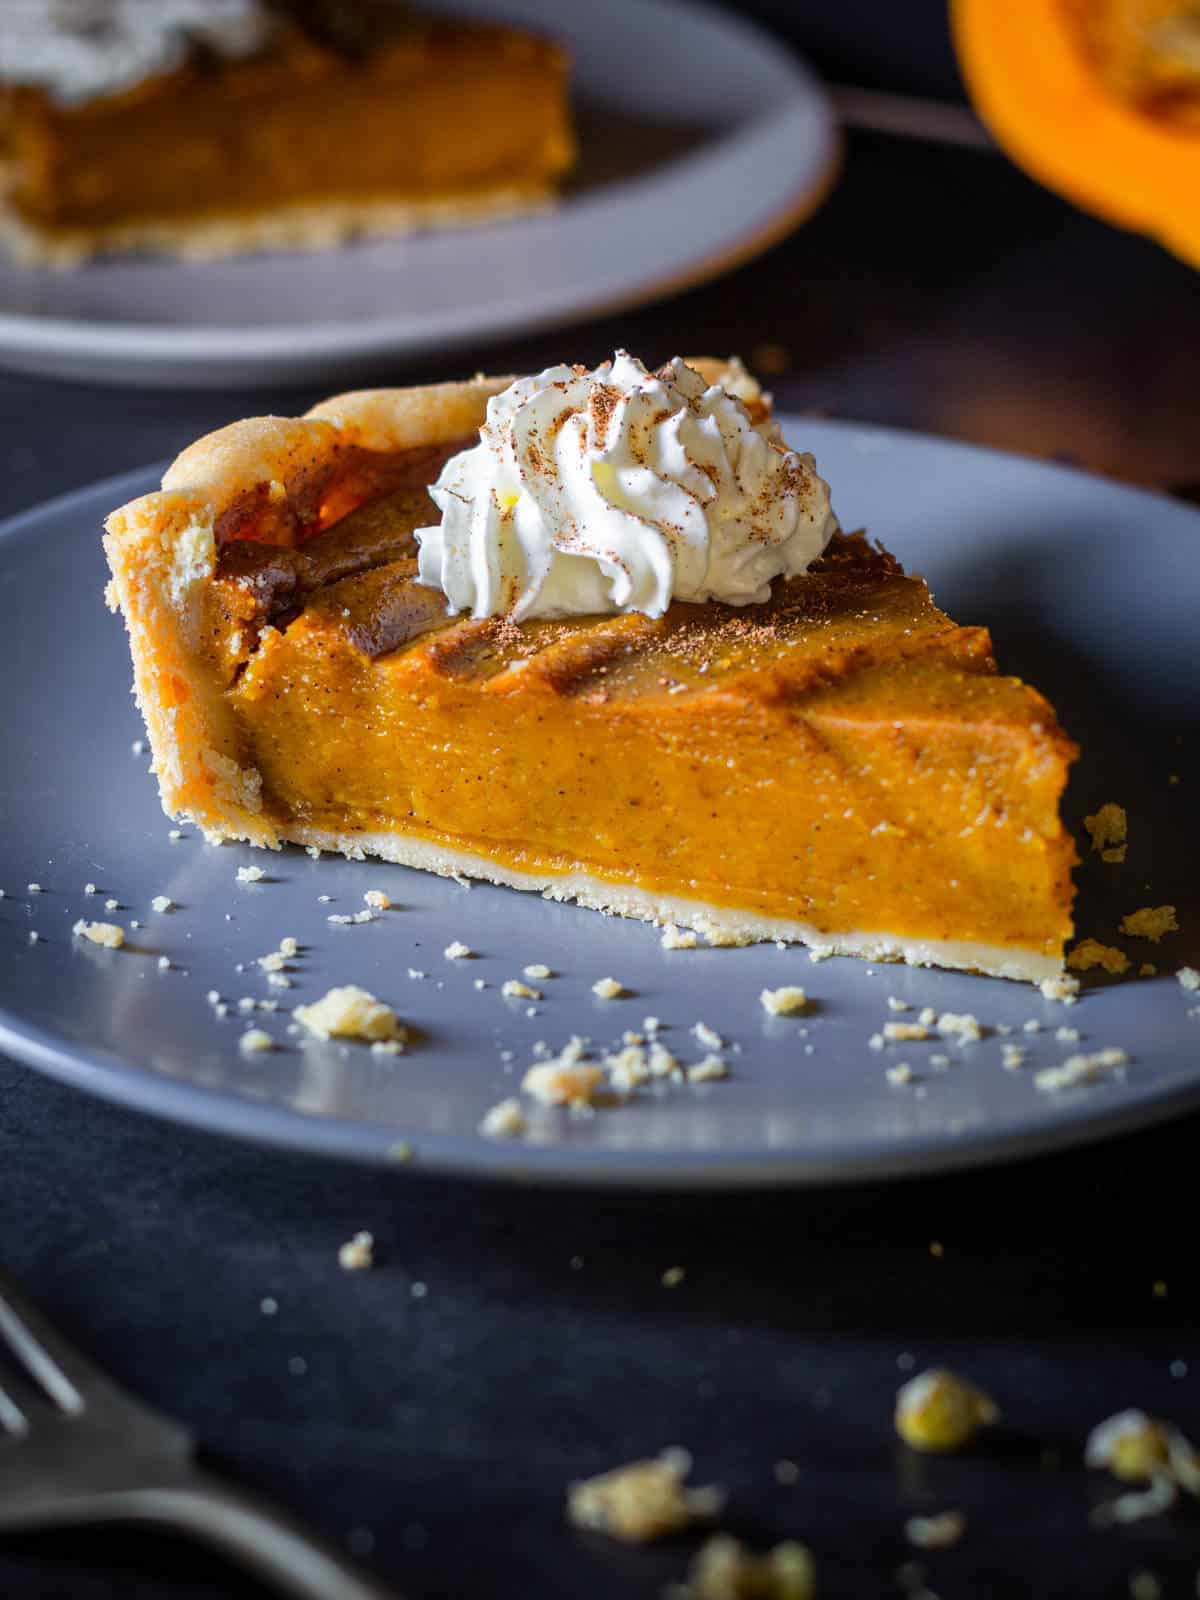 vegan pumpkin pie portion with whipped cream